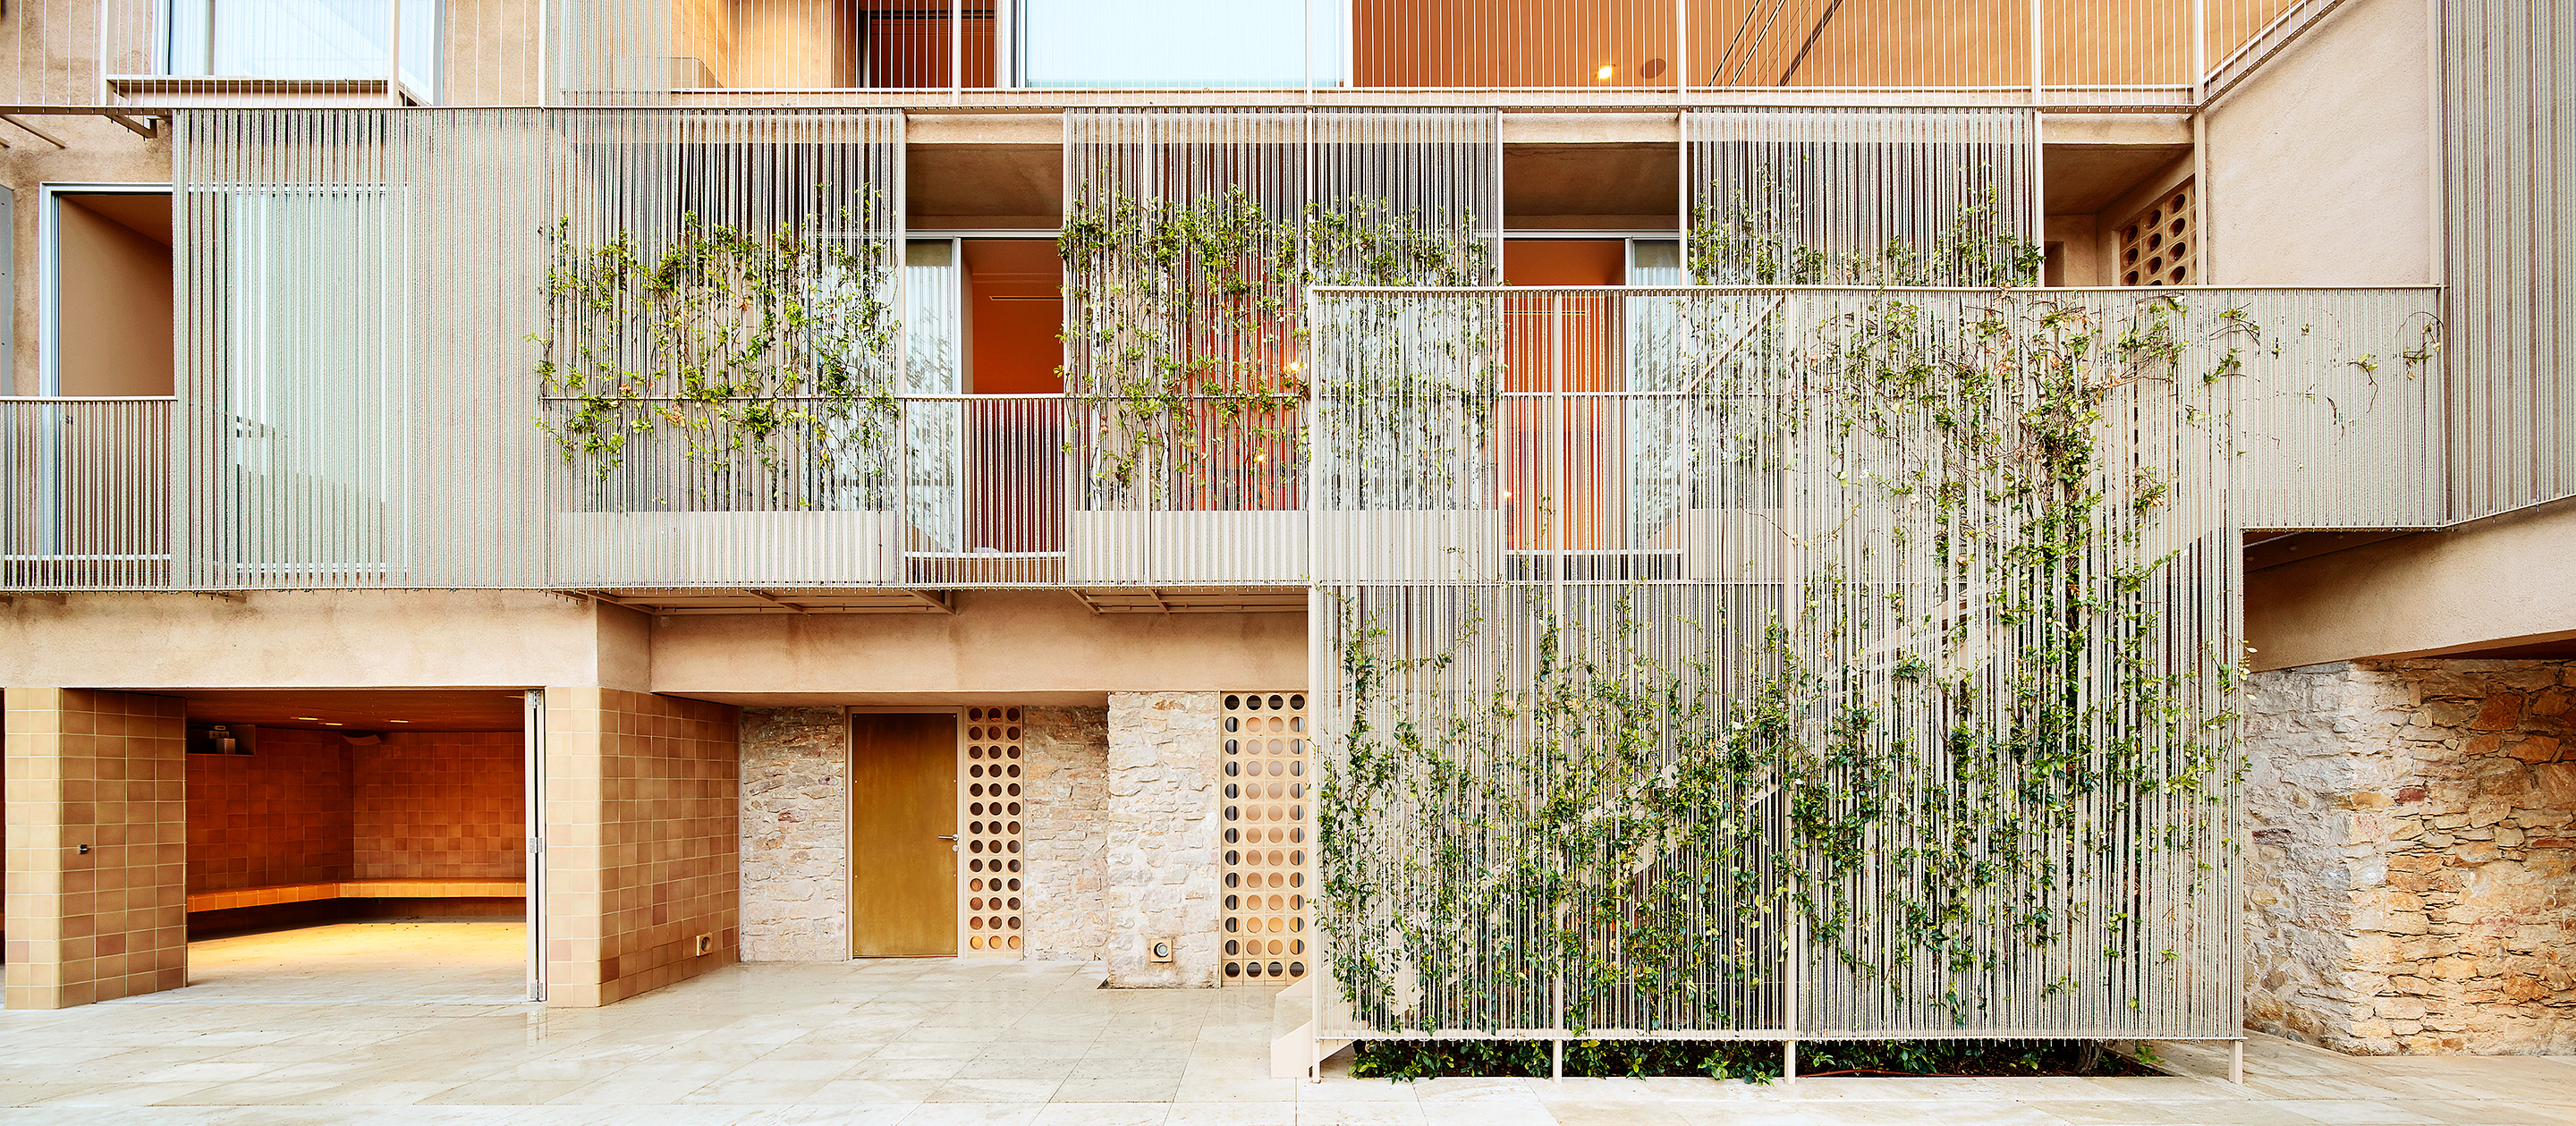 scaffold house - refurbishment of a single family house in Begur, Girona